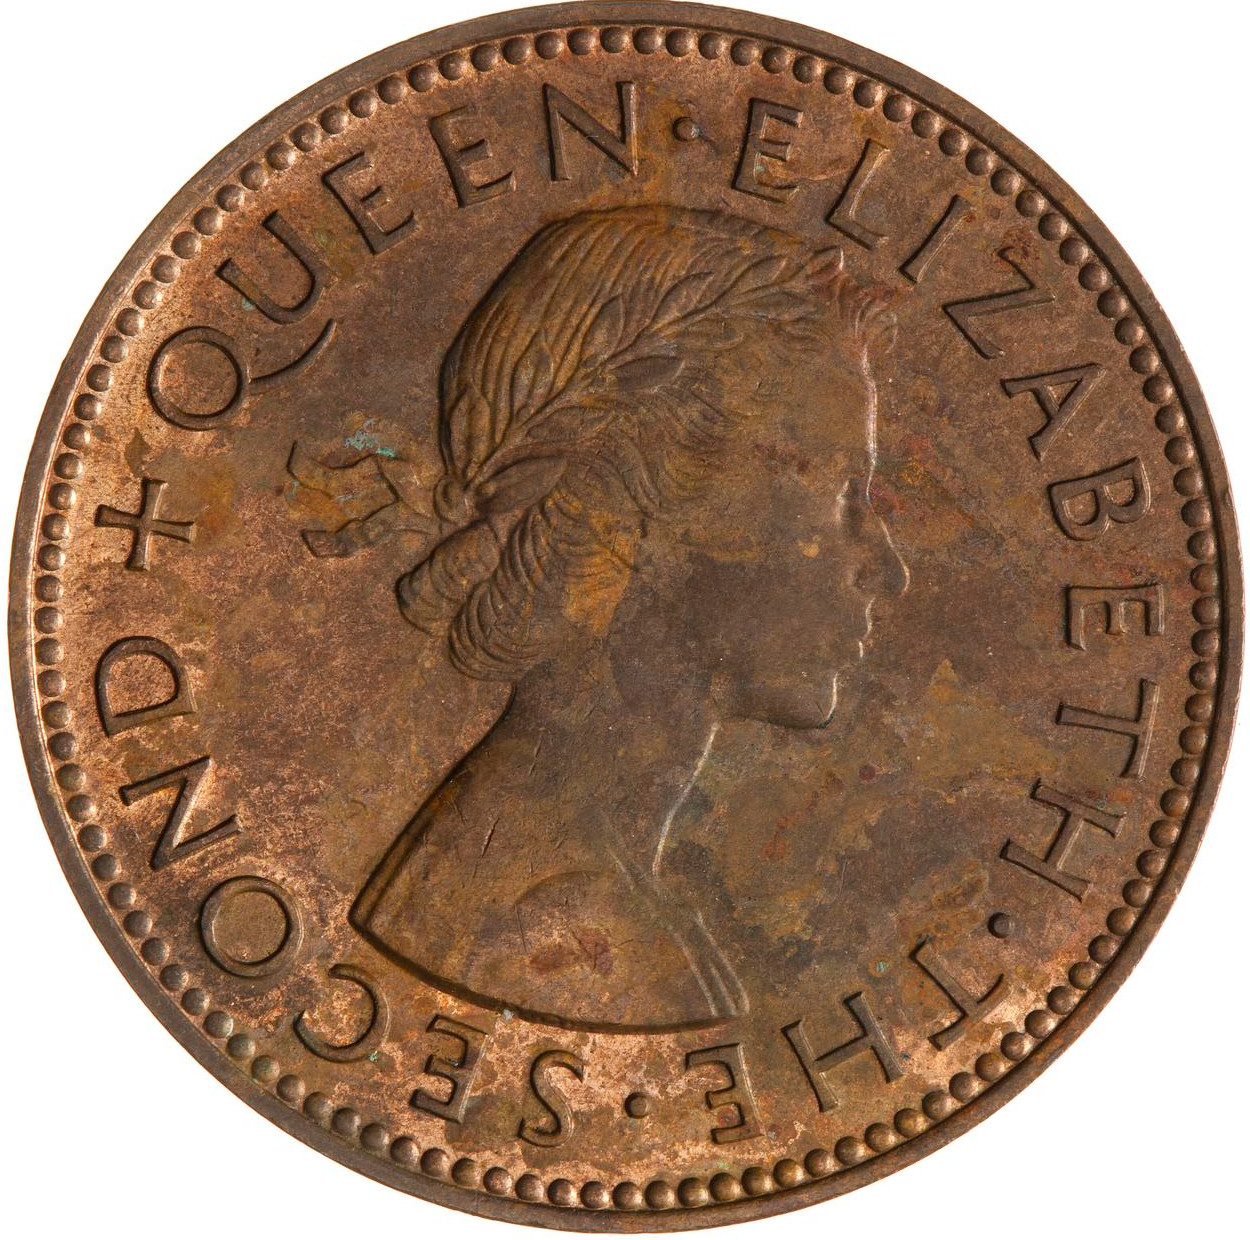 Halfpenny 1957: Photo Coin - 1/2 Penny, New Zealand, 1957